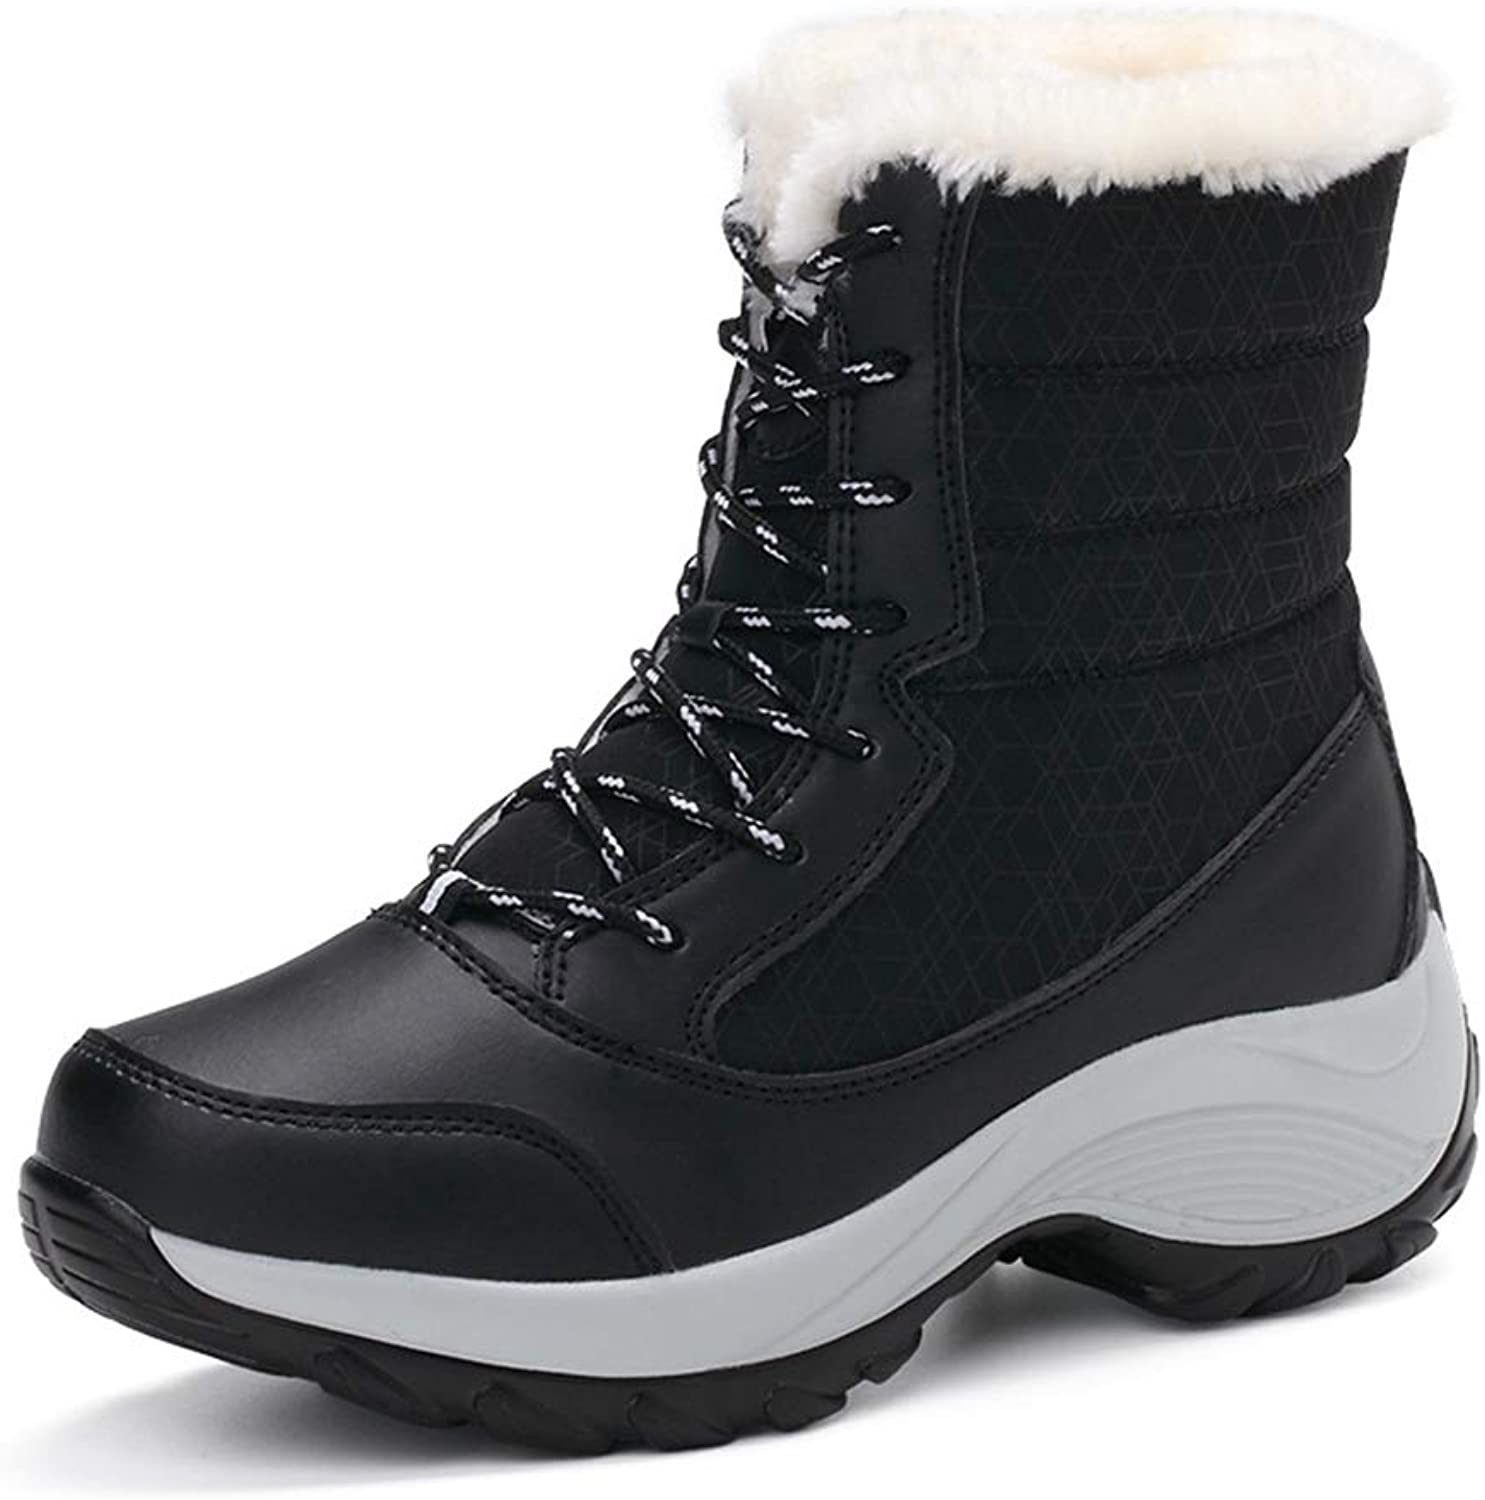 GIY Women Waterproof Snow Boots Warm Fur Insulated Lace up High Top Outdoor Wedges Platform Sneaker Mid Calf Boots